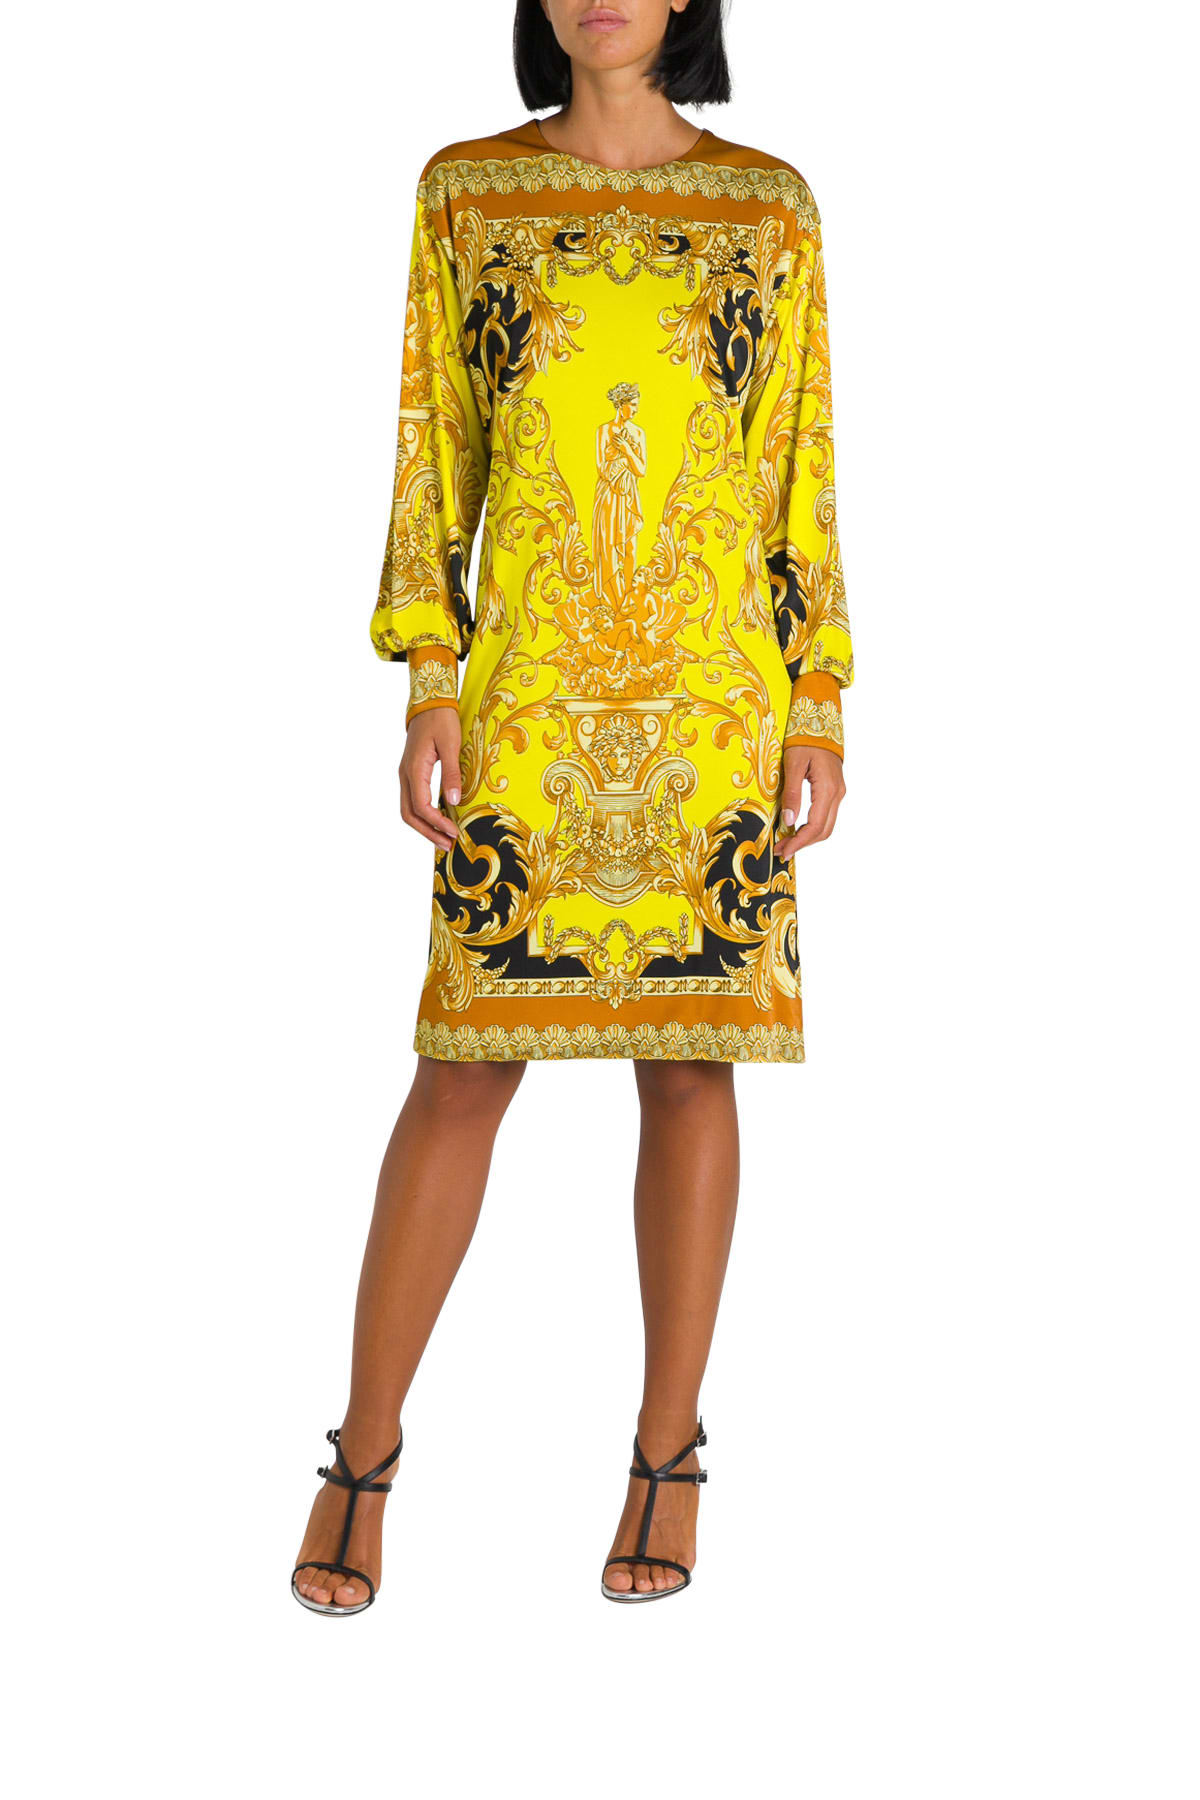 Versace Baroque Printed Tunic Dress